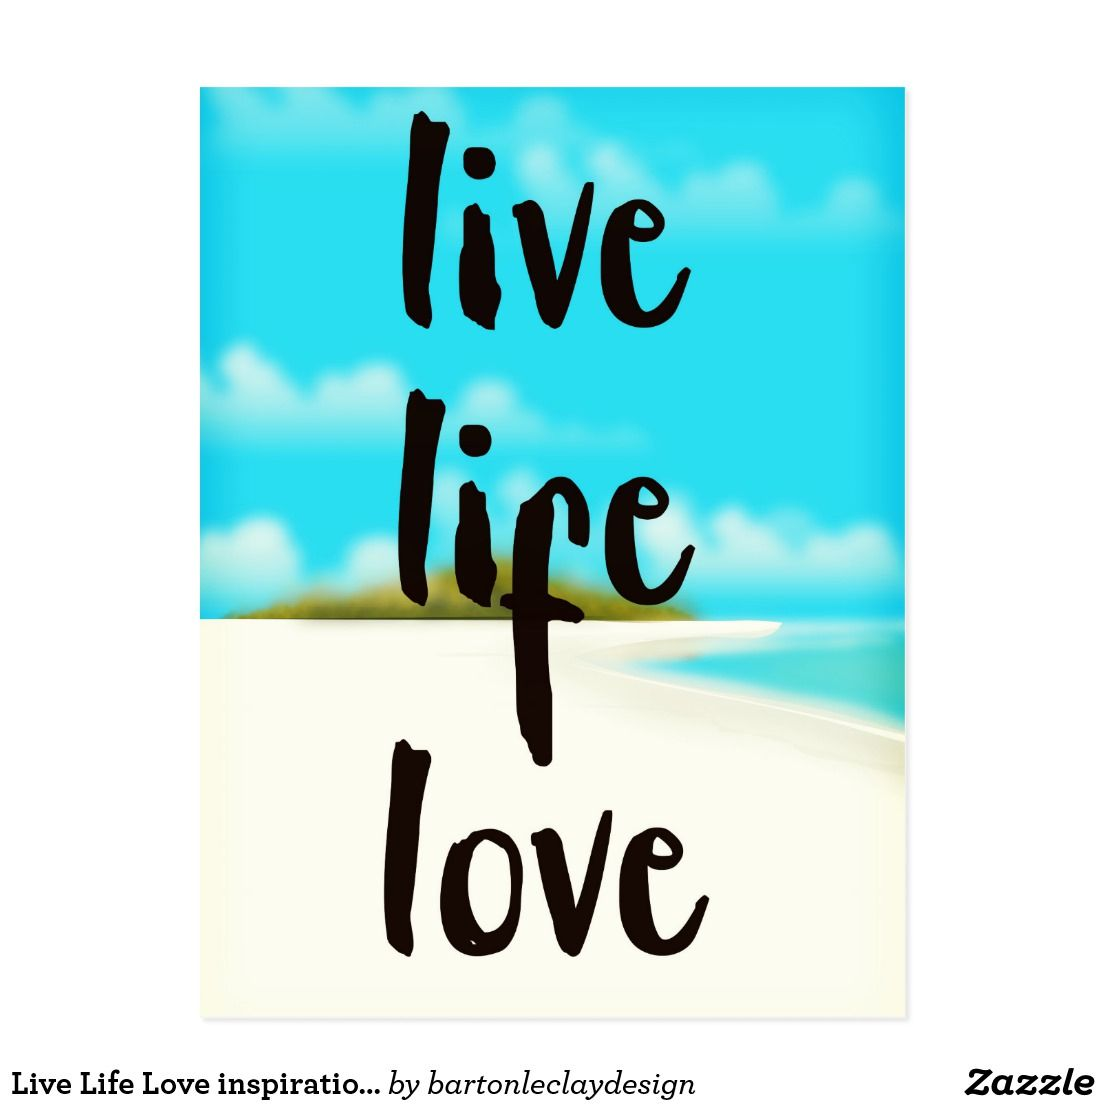 Live Life Love Inspirational Quote Postcard Zazzle Com Live Life Love Inspirational Quotes Magnet Quotes [ 1106 x 1106 Pixel ]